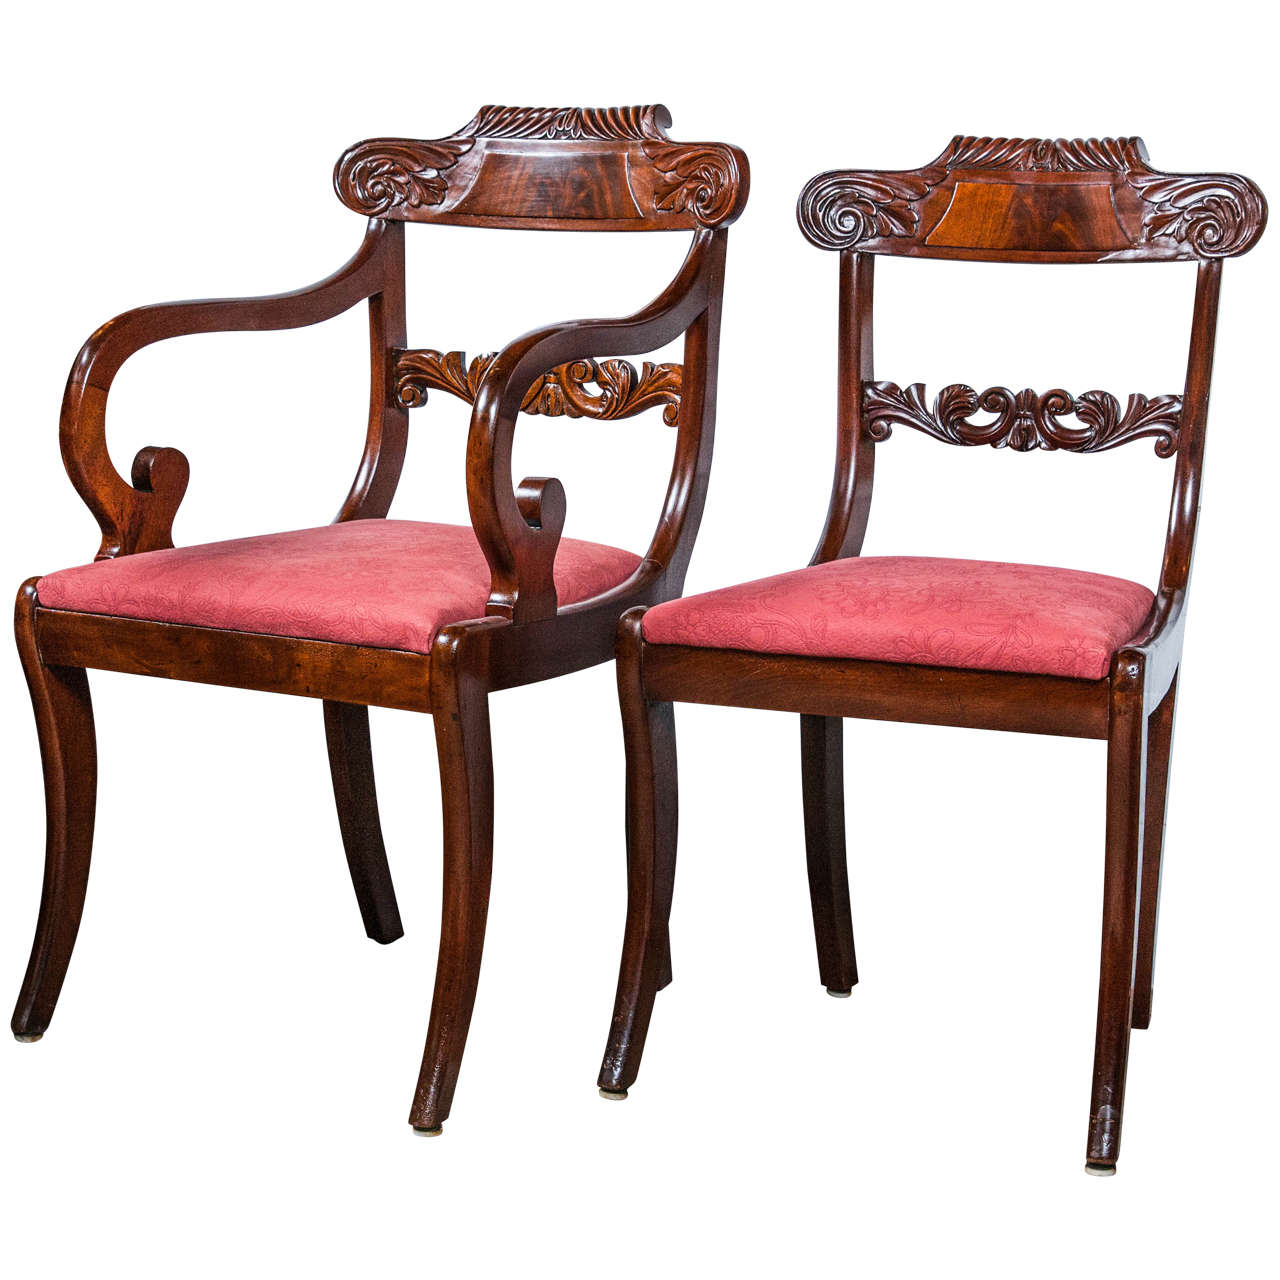 Set Eight English Regency Dining Chairs 19th C. Solid Mahogany Scroll Carvings